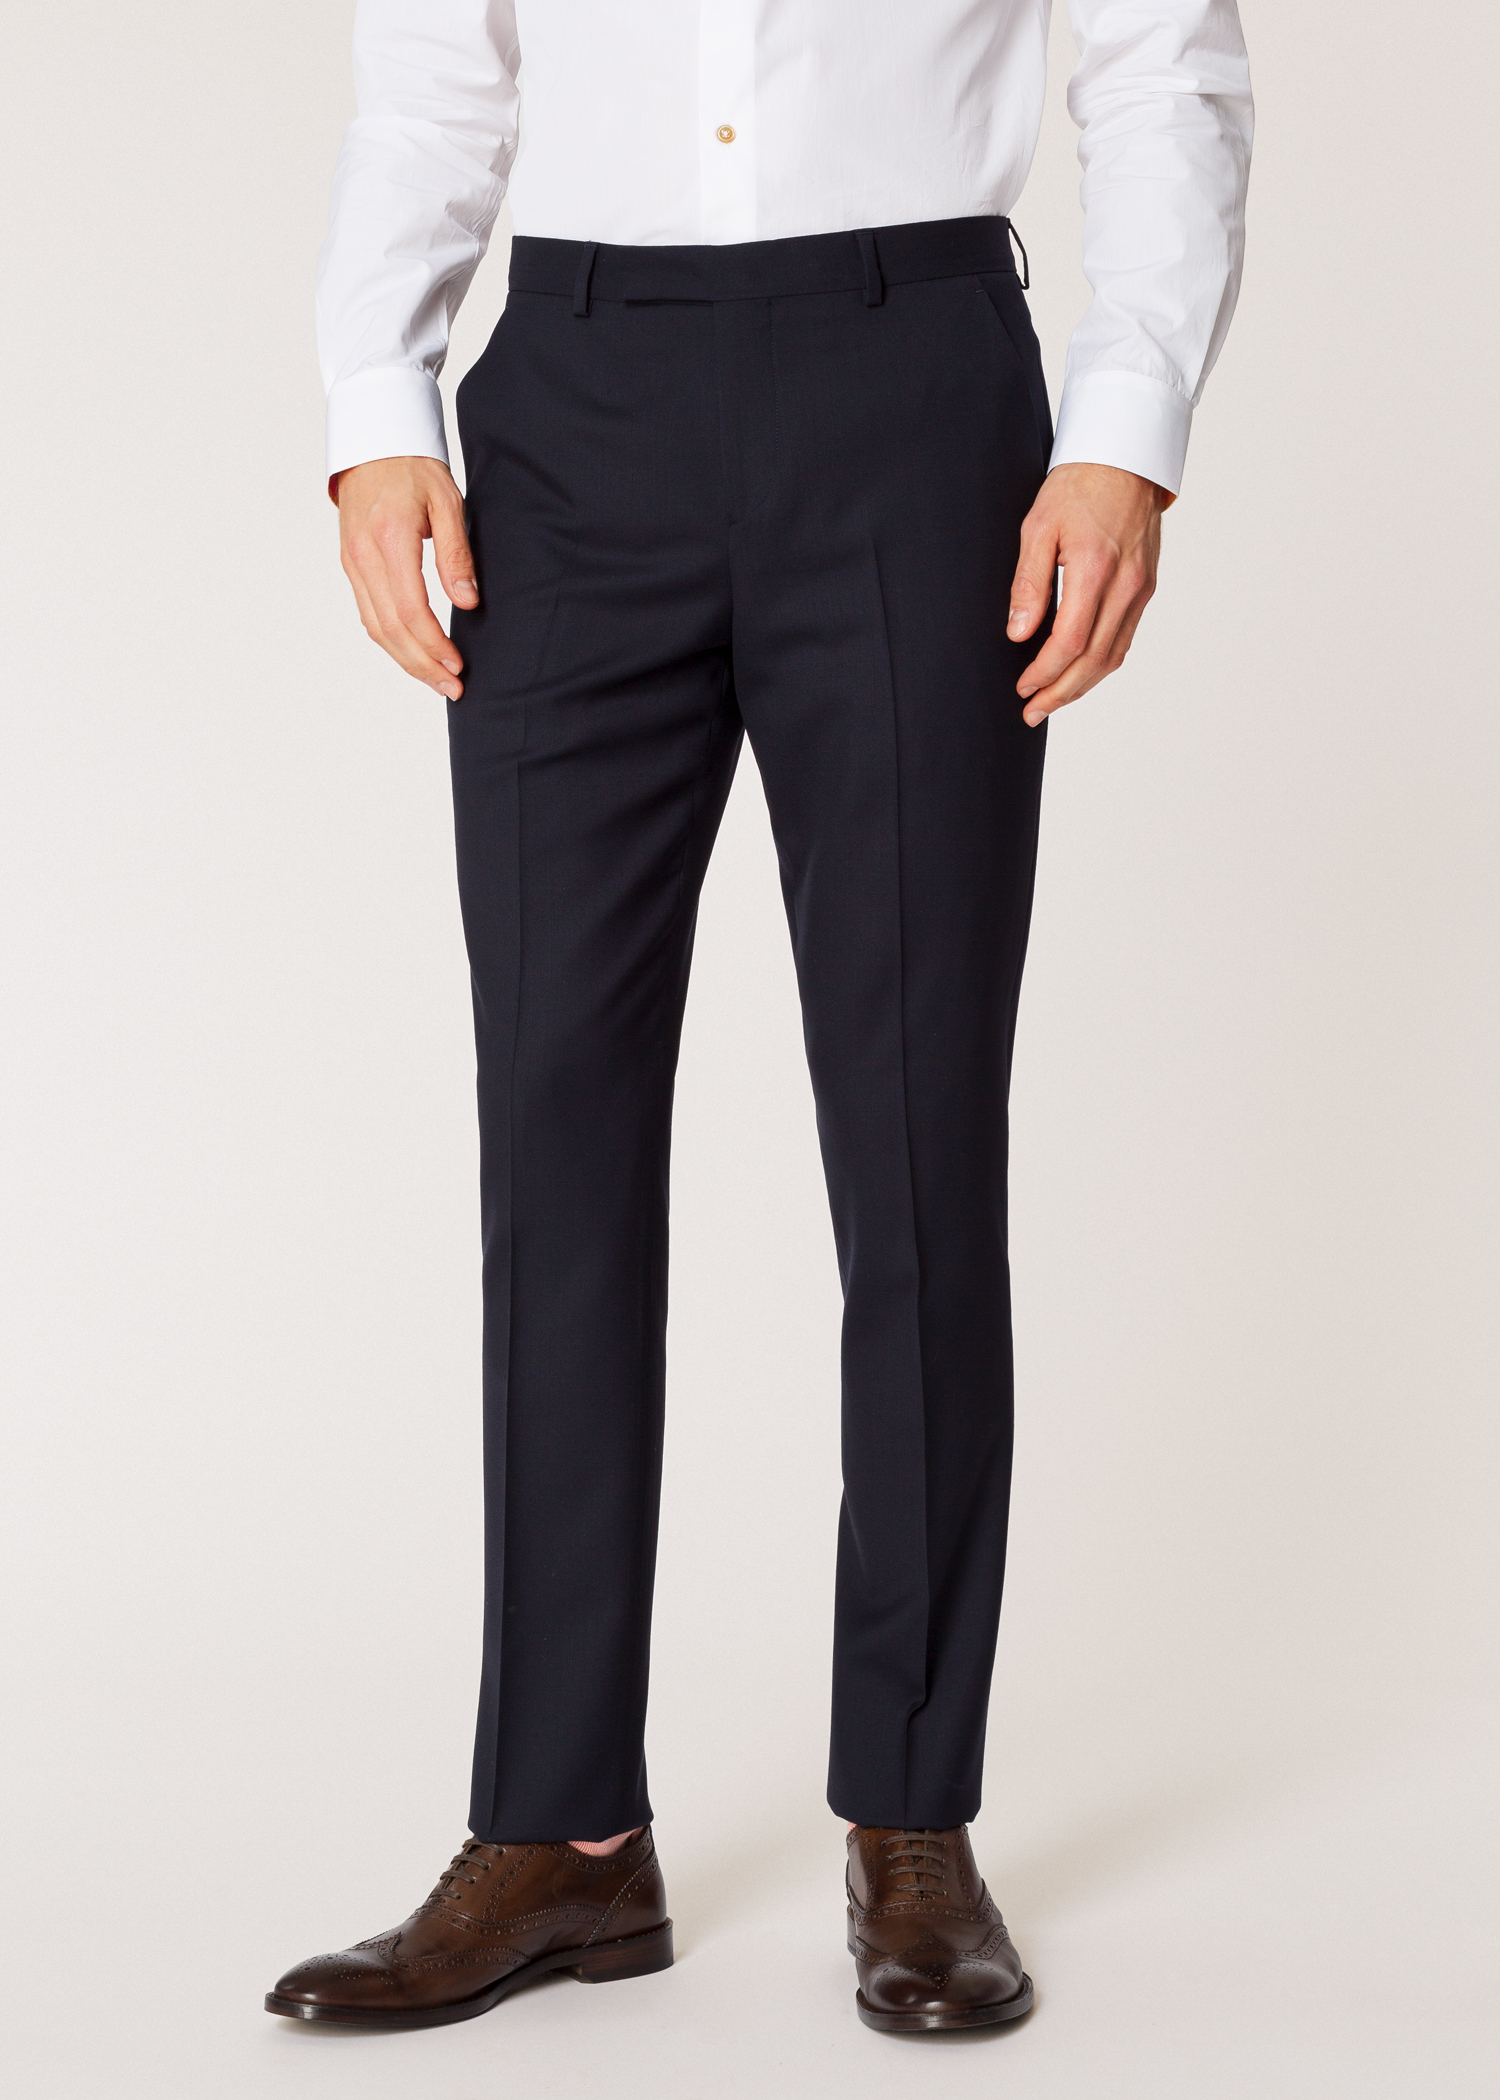 c5f817e9 The Soho - Men's Tailored-Fit Navy Wool 'A Suit To Travel In' - Paul ...